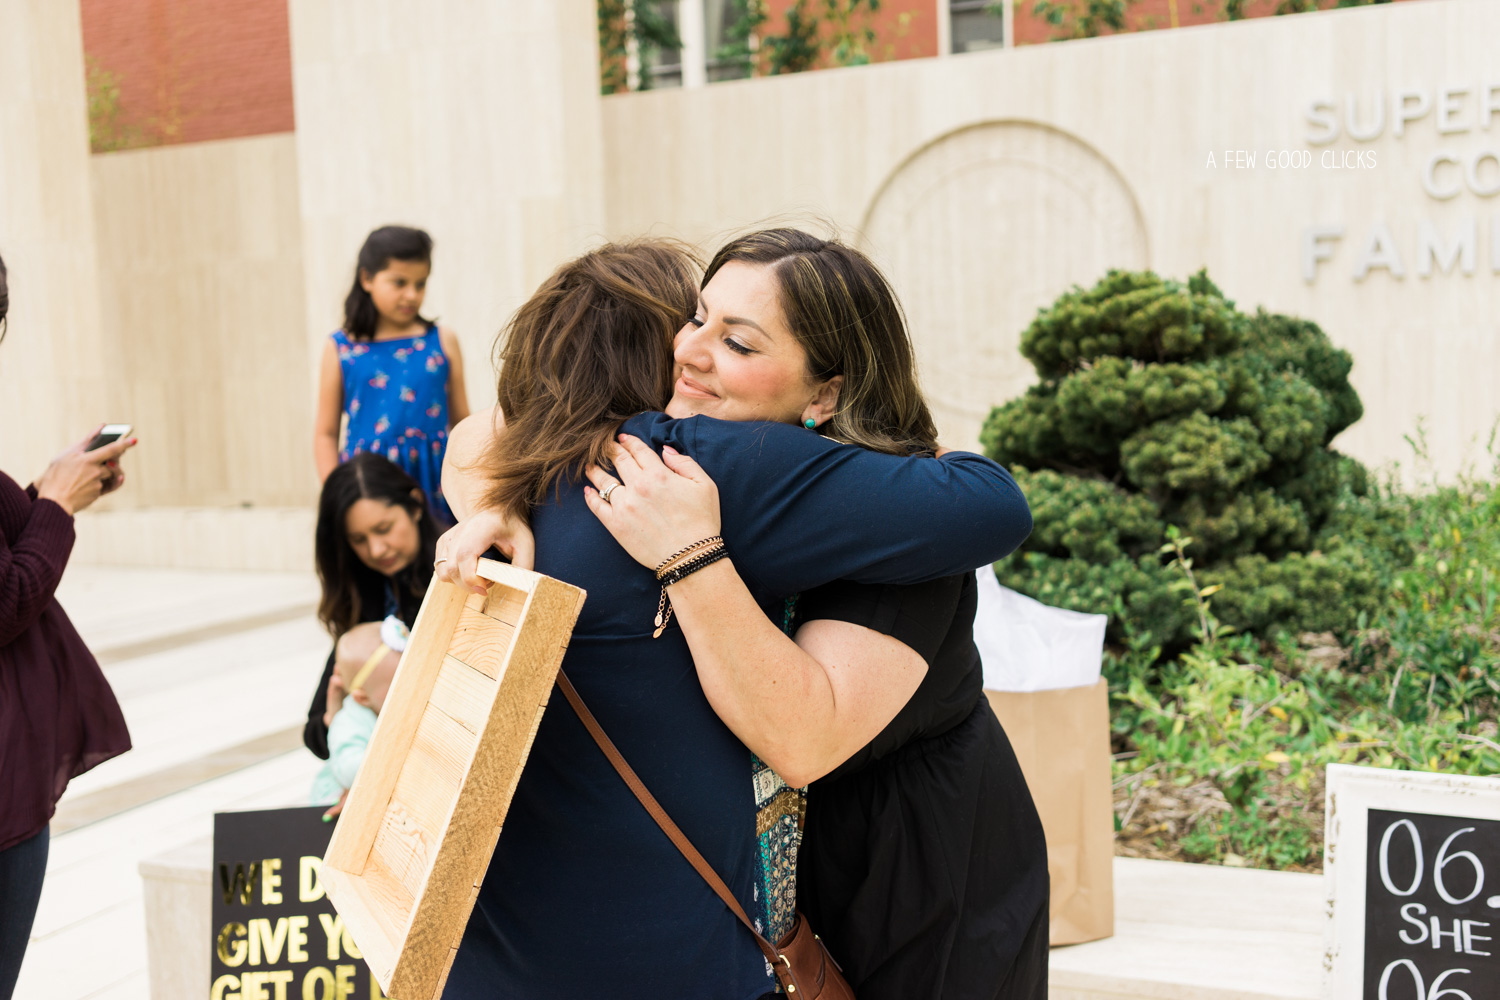 Moments of hugging & crying right after the ceremony outside the courthouse.